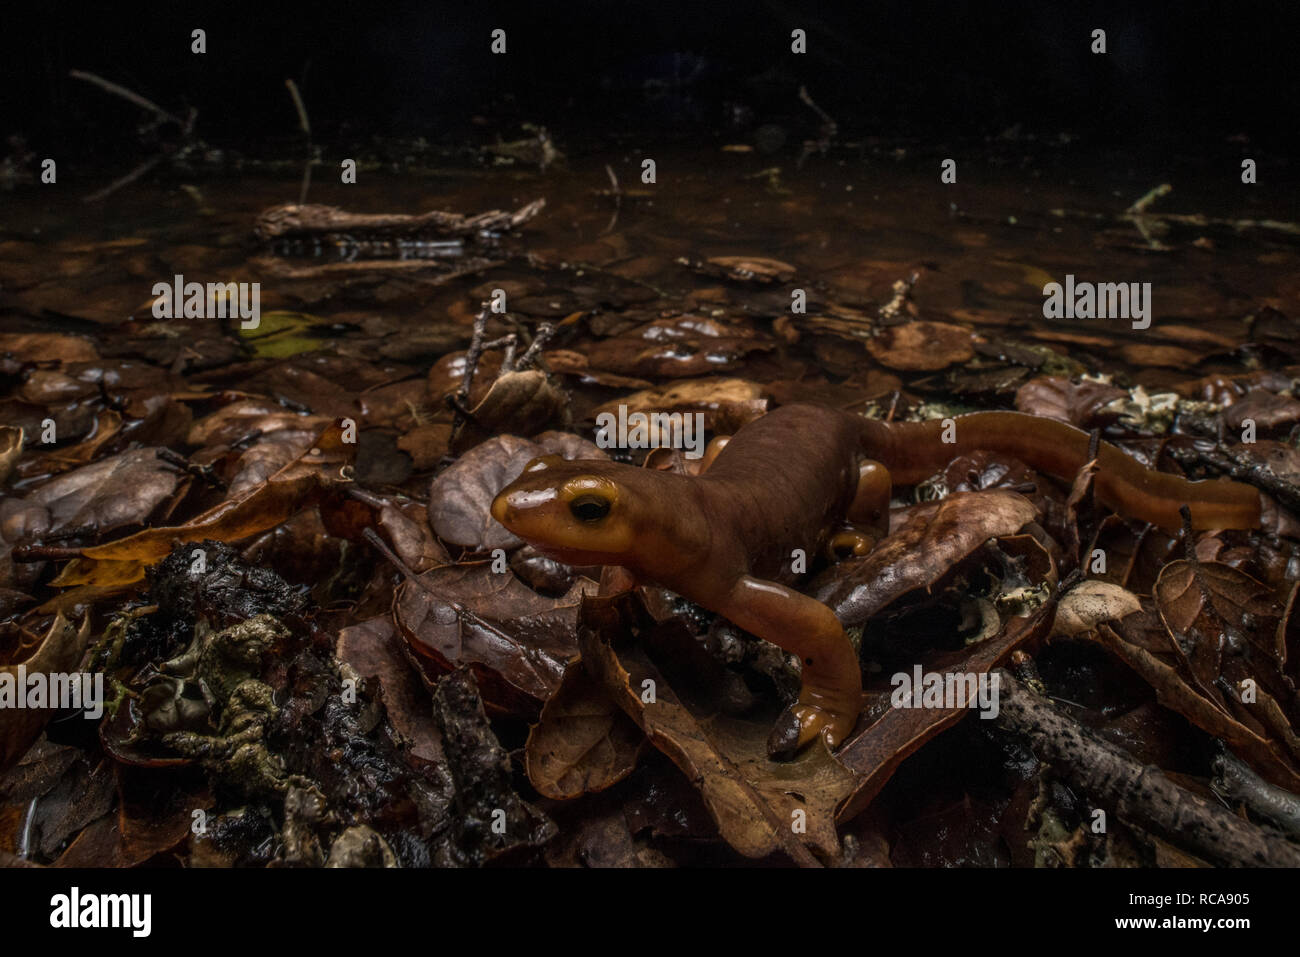 A california newt (Taricha torosa) a poisonous species of salamander found in California walks around the edge of its breeding pond at night. Stock Photo